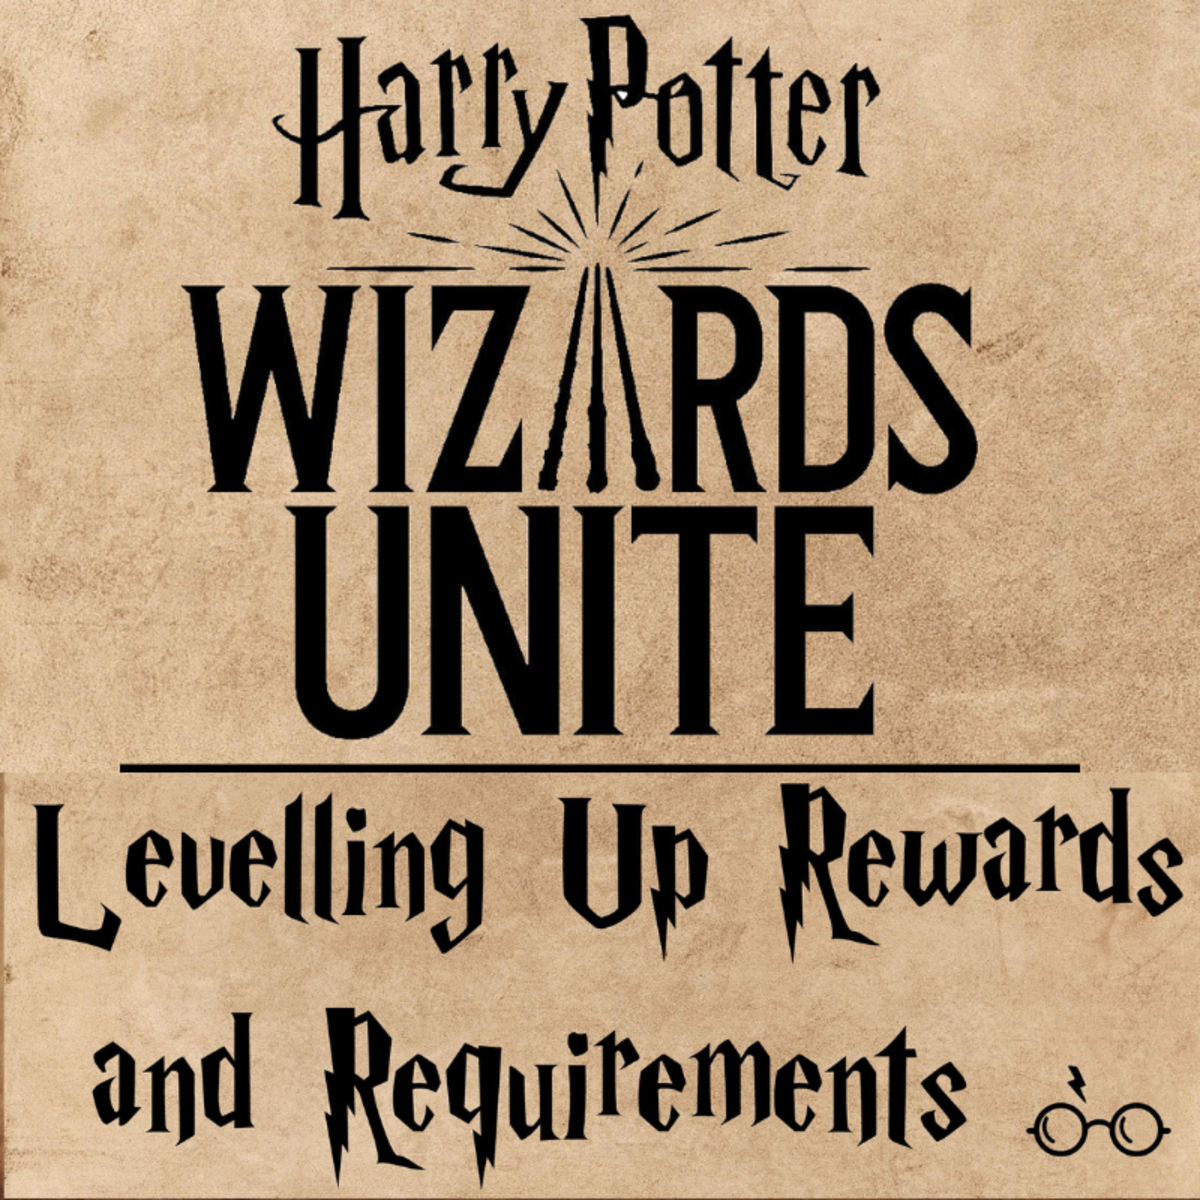 Harry Potter Wizards Unite: Level Up Rewards and Requirements